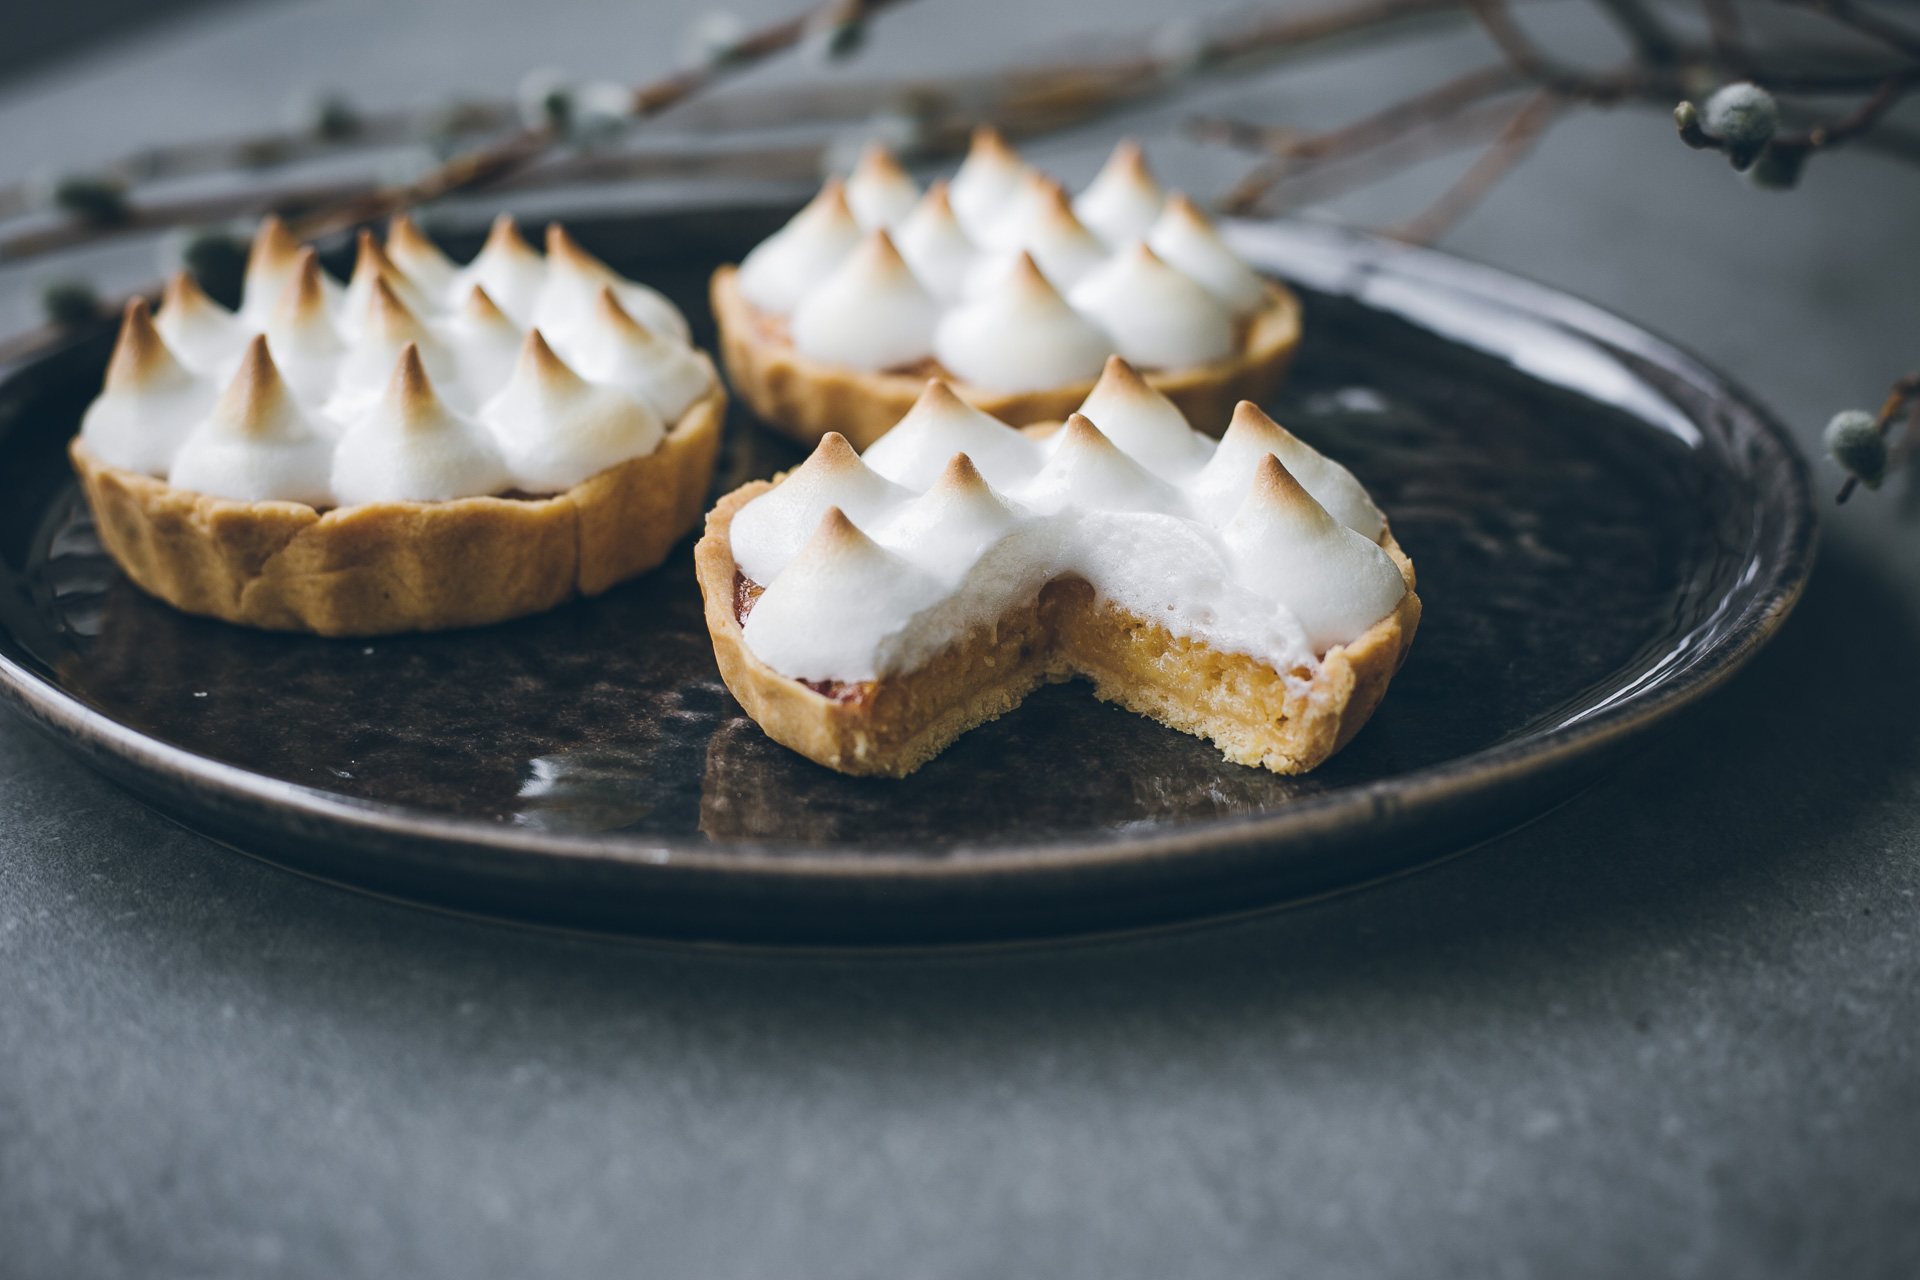 Zero-waste Recipe: Lemon tart with aquafaba meringue | on The Adagio Blog by Thais FK